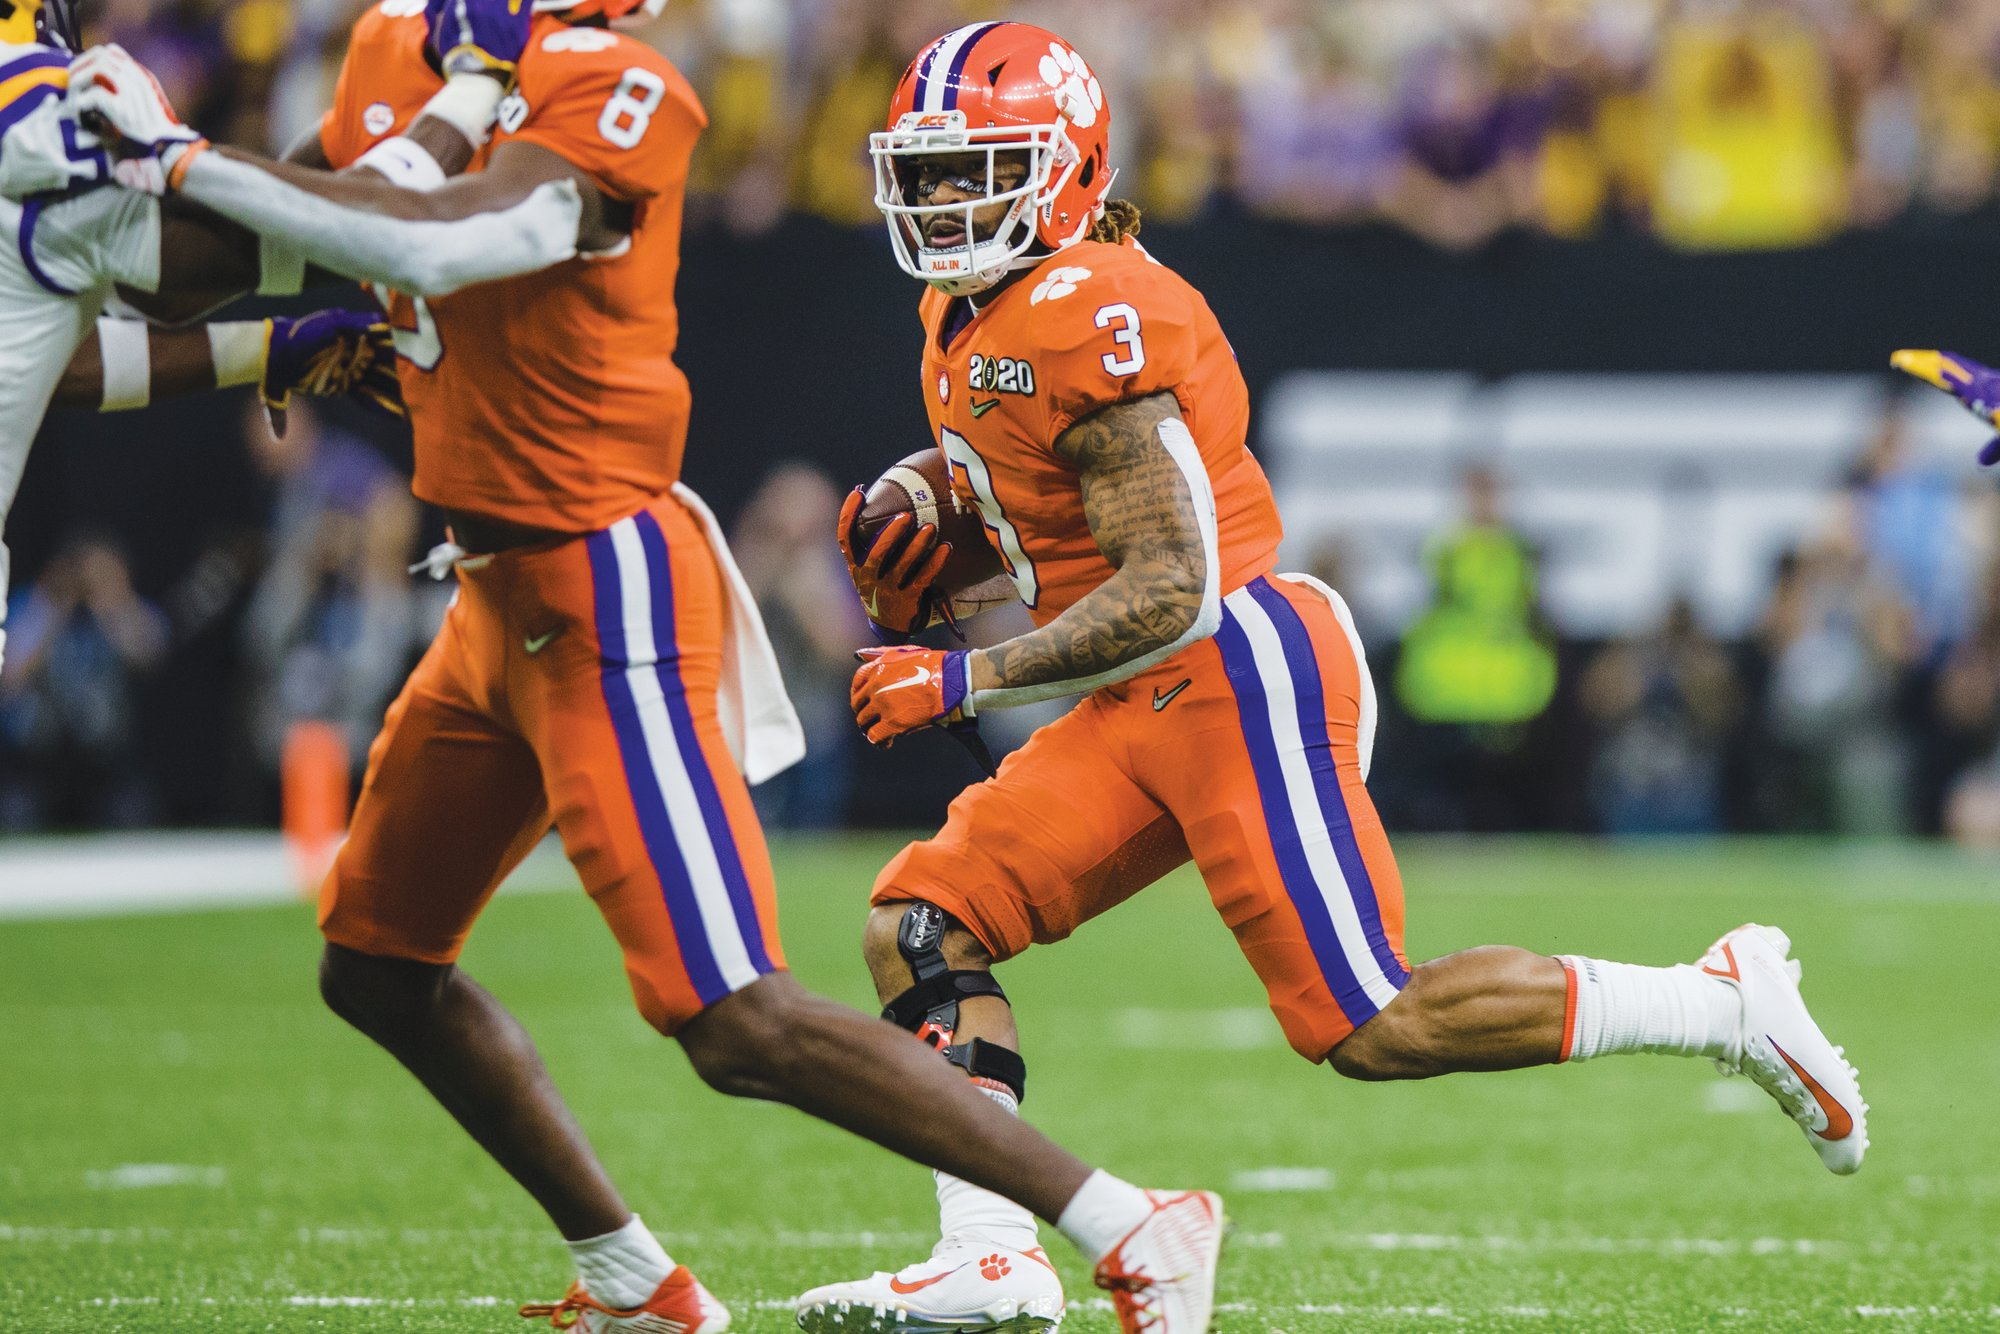 Clemson wide receiver Amari Rodgers the Tigers will travel to Notre Dame on Nov. 7 as part of their schedule released by the Atlantic Coast Conference on Thursday.